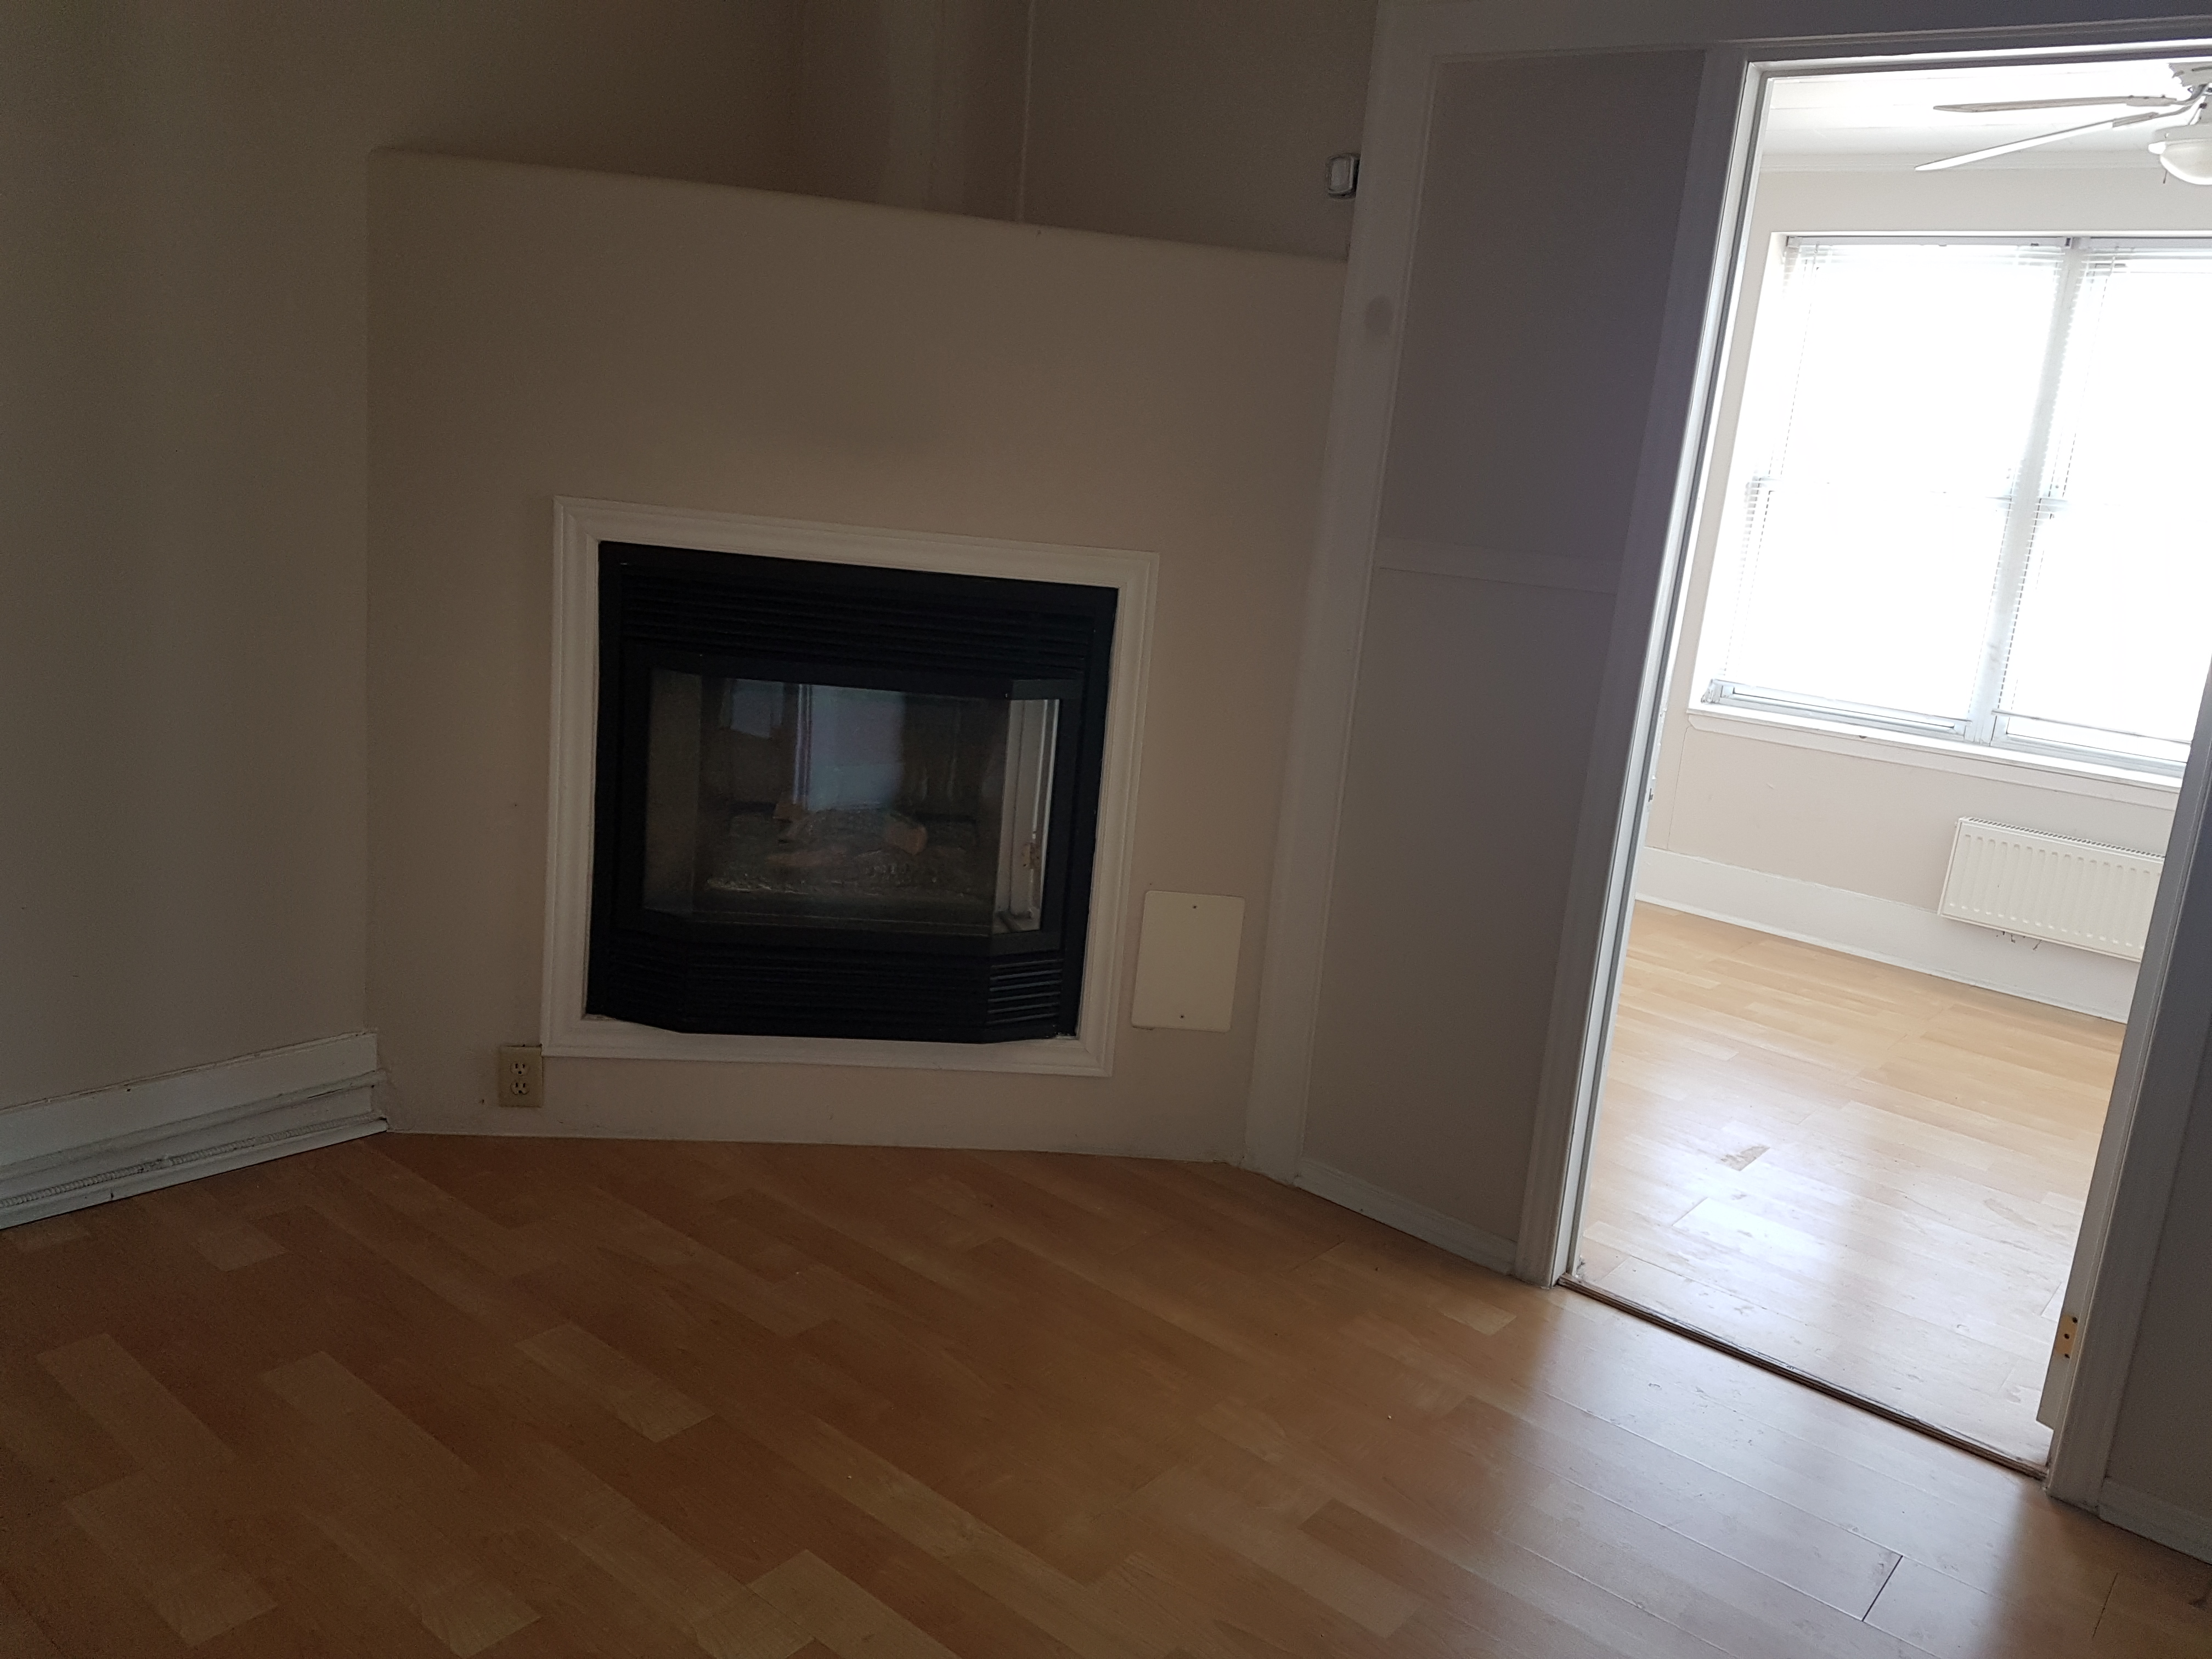 COZY AND CHIC 1 BEDROOM UPPER UNIT IN CENTRAL WINDSOR